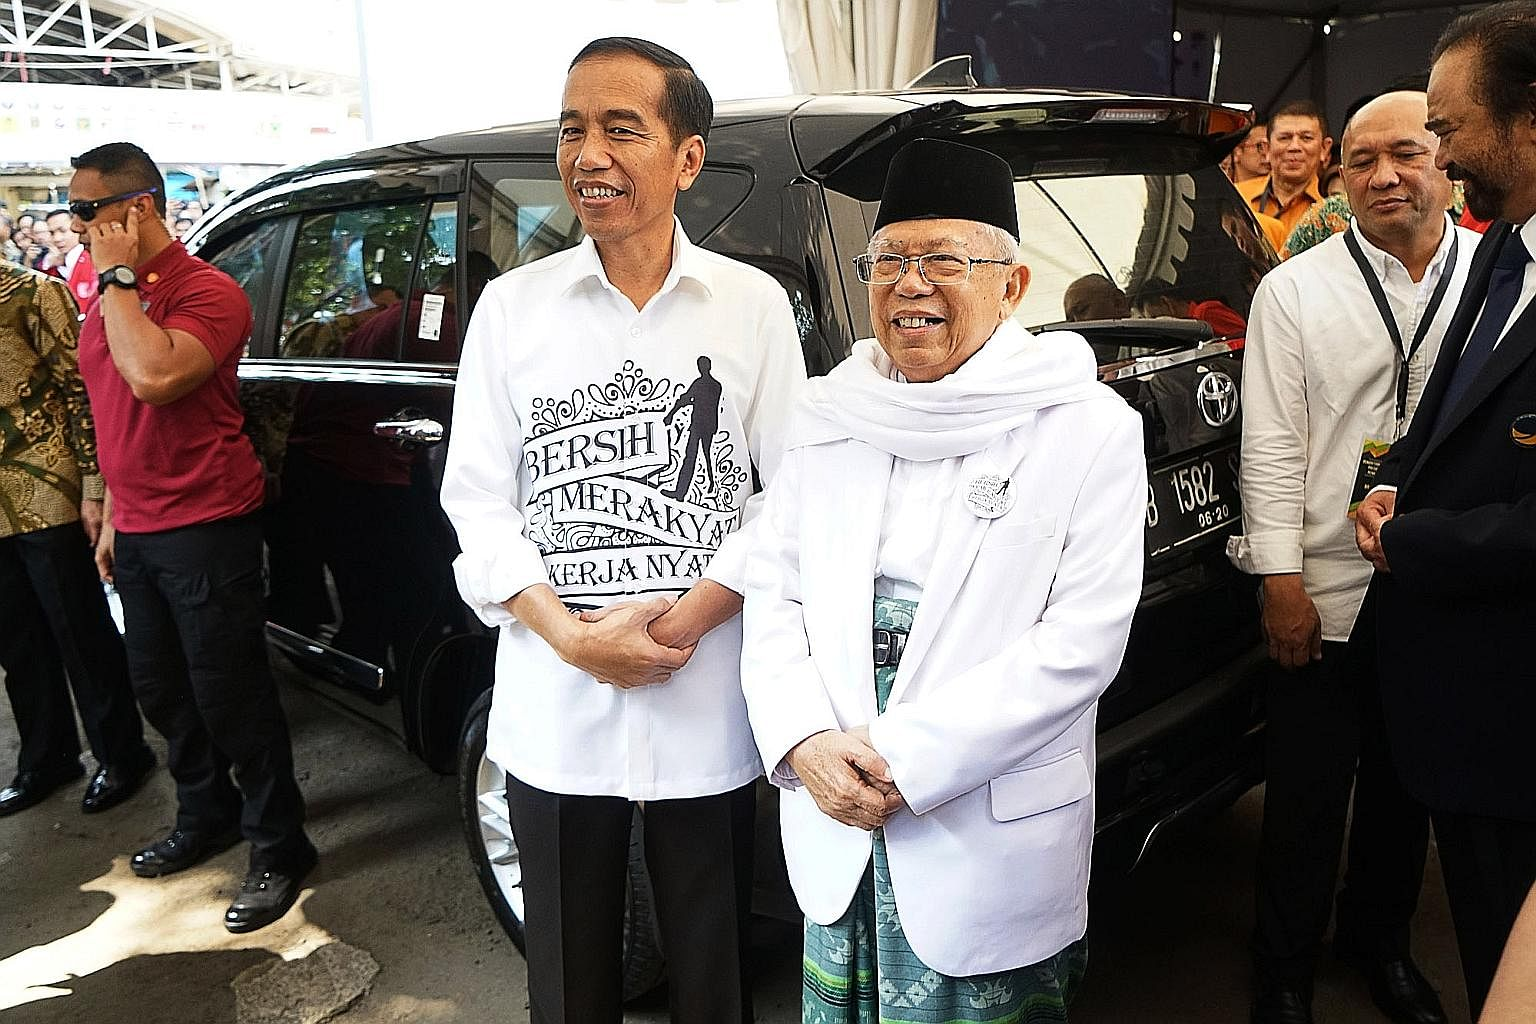 Indonesian President Joko Widodo with his running mate Ma'ruf Amin, who was seen as the weakest performer among the four candidates in the first presidential debate last month.